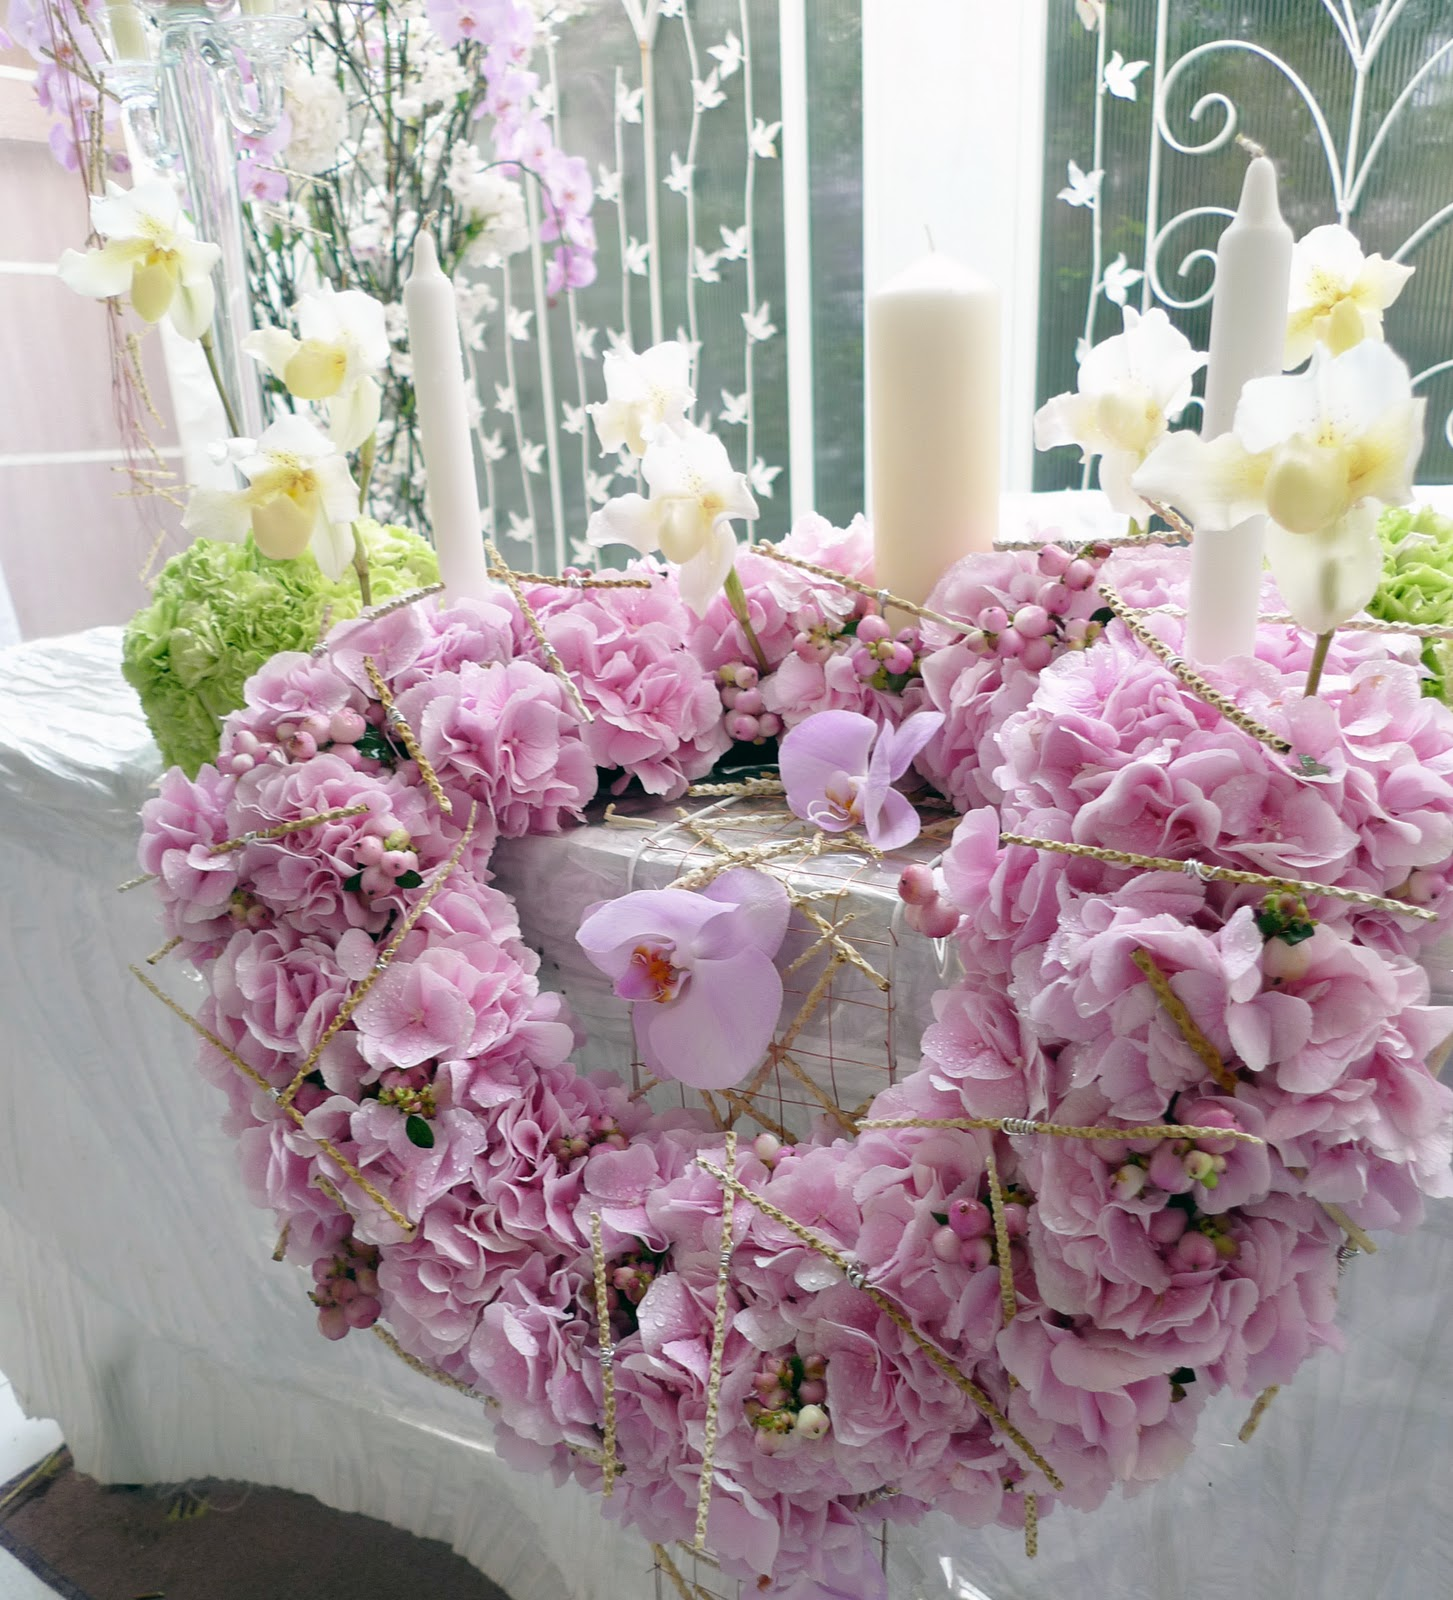 Wedding flowers decorations romantic decoration for Floral wedding decorations ideas